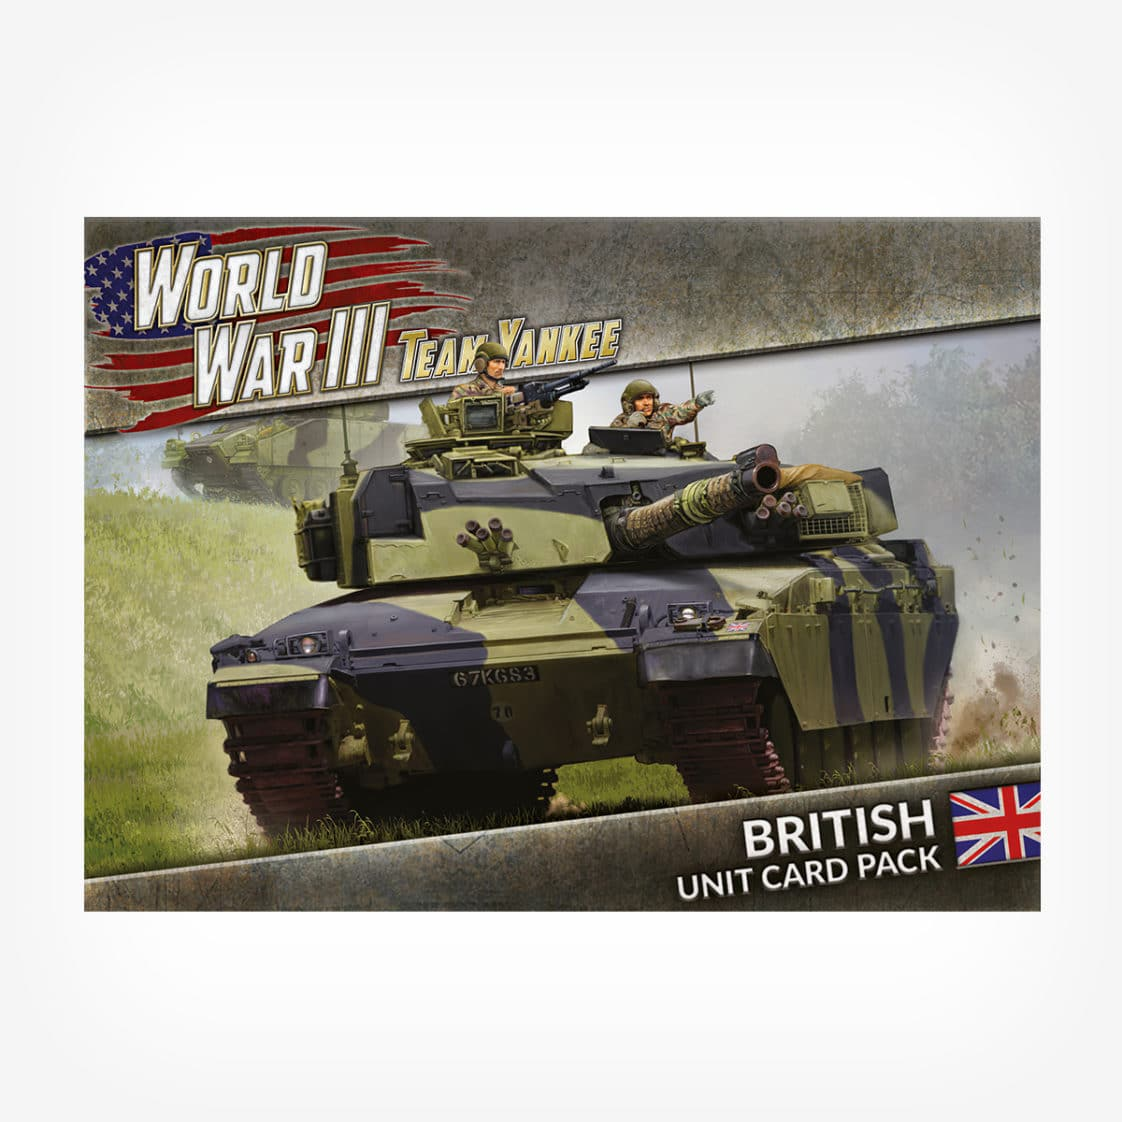 WWIII: British Unit Card Pack